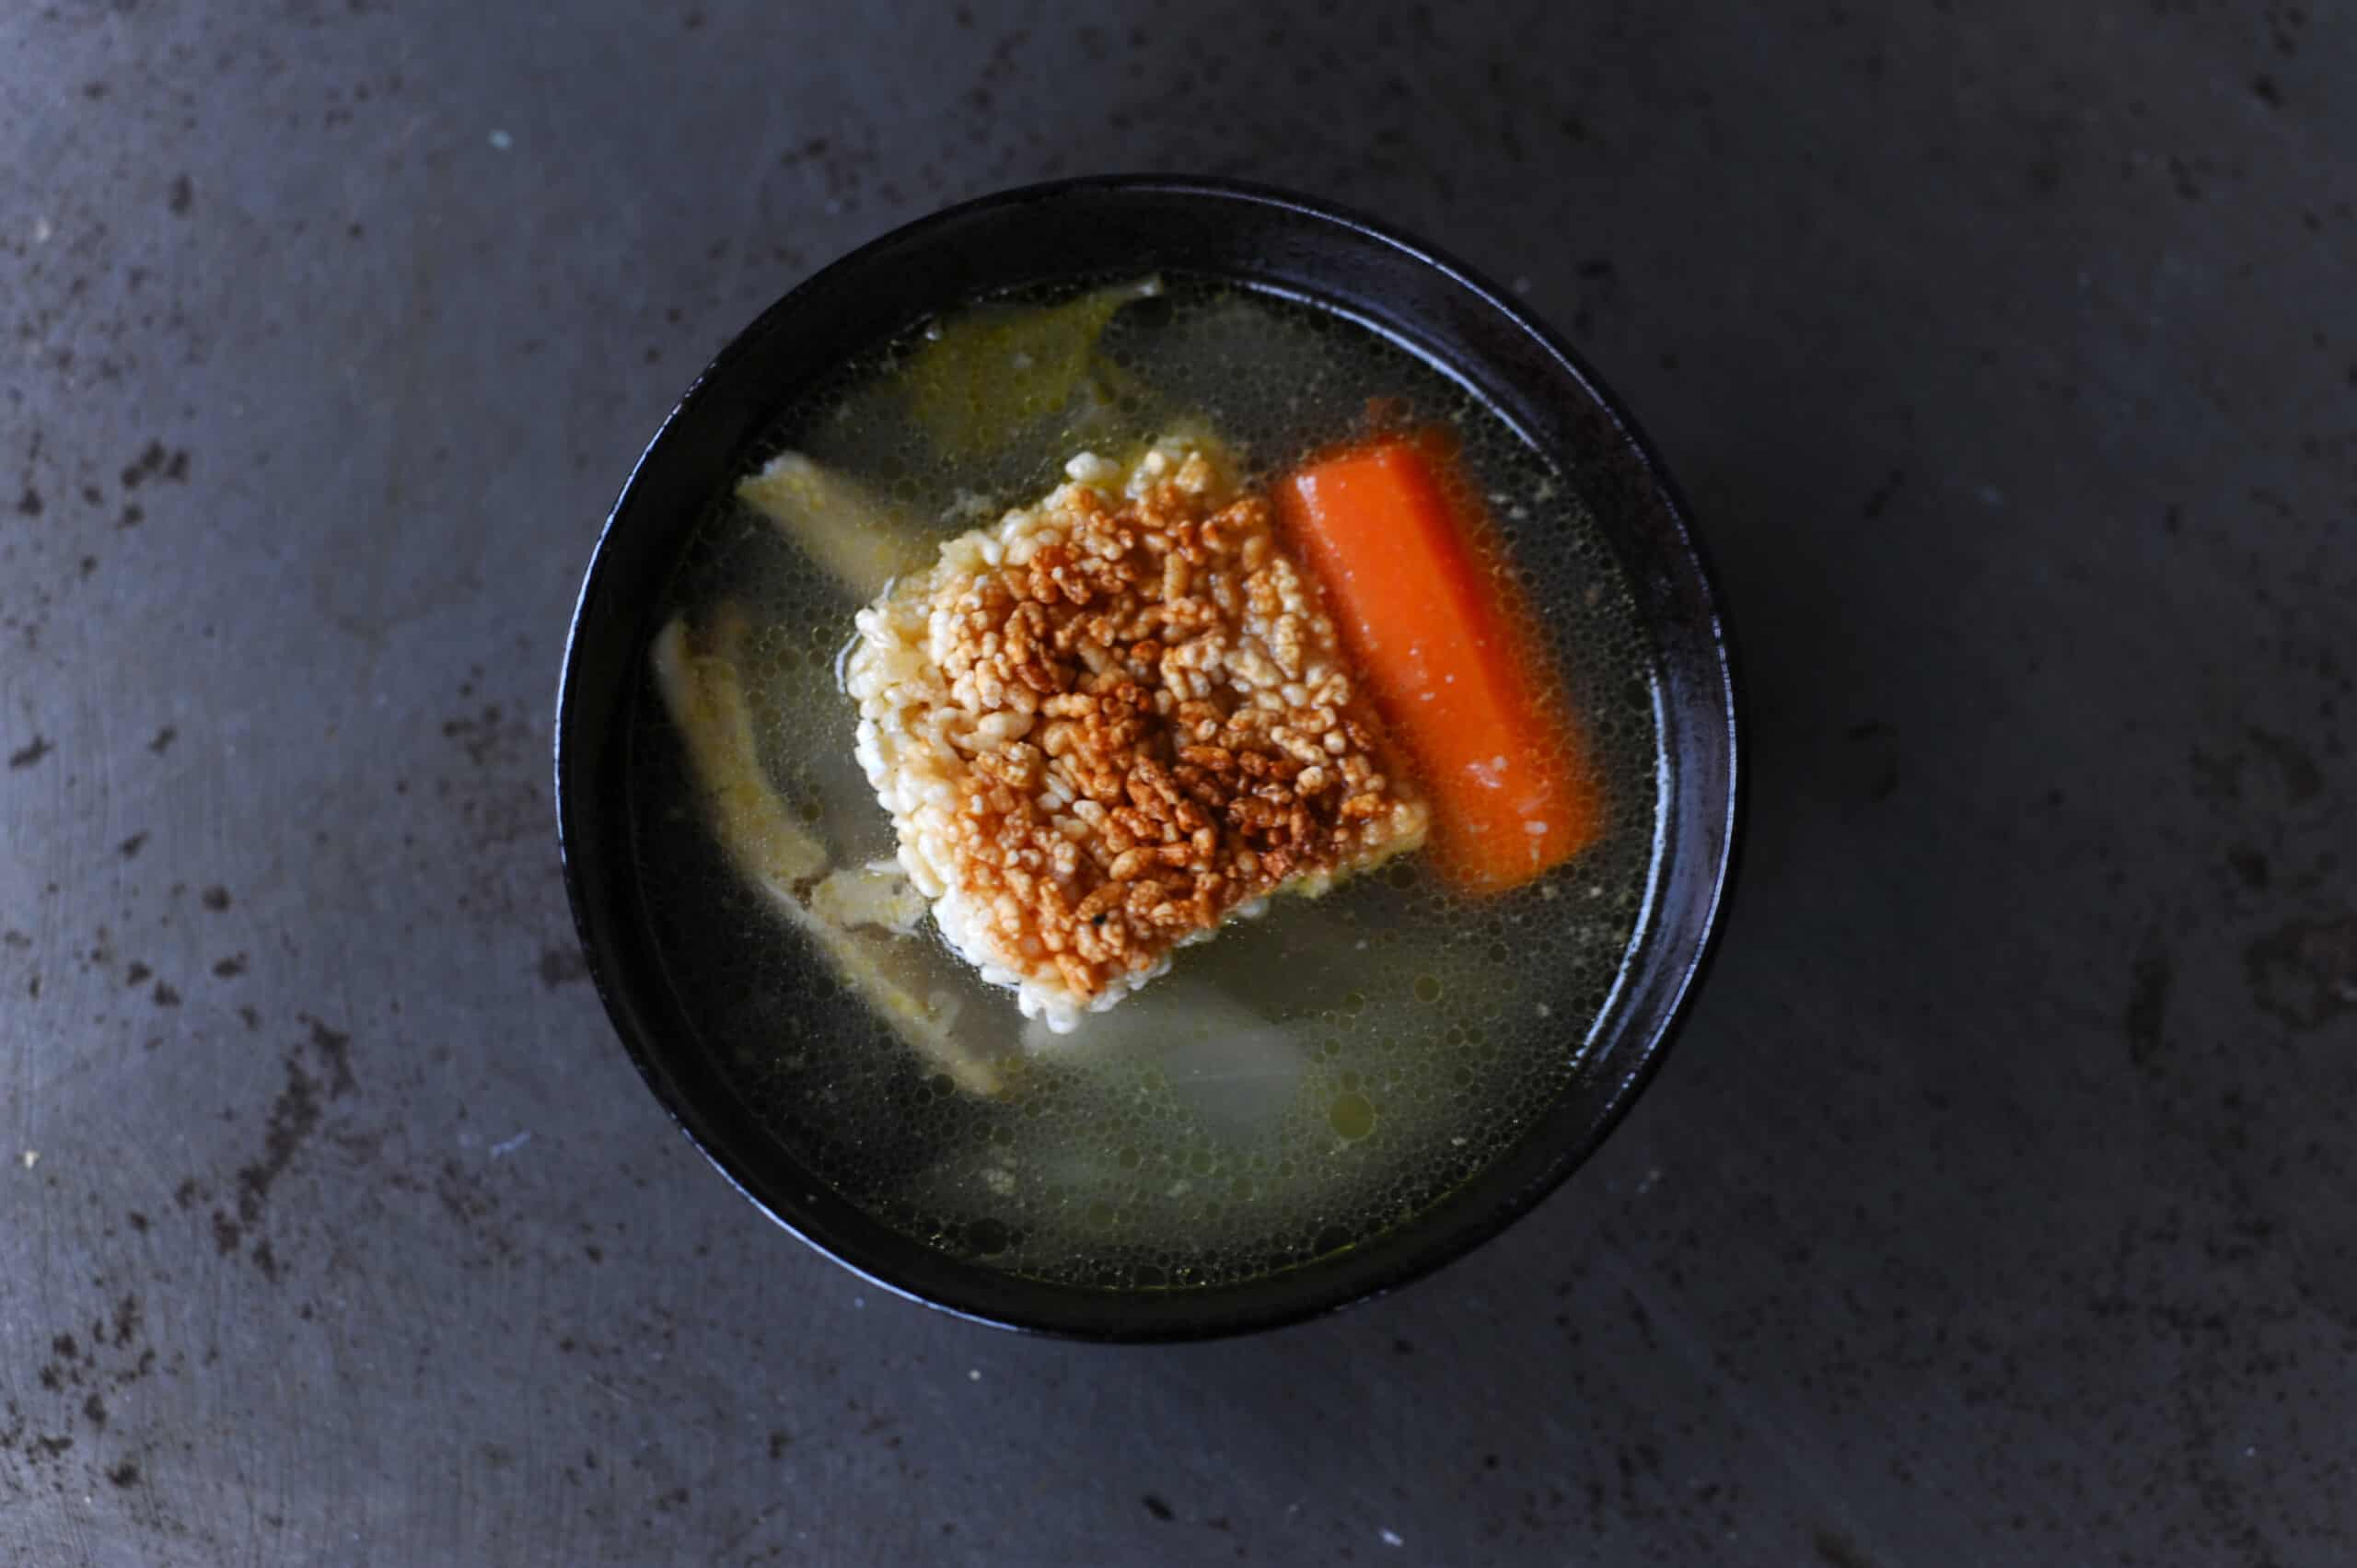 Chicken soup with sizzling rice cakes